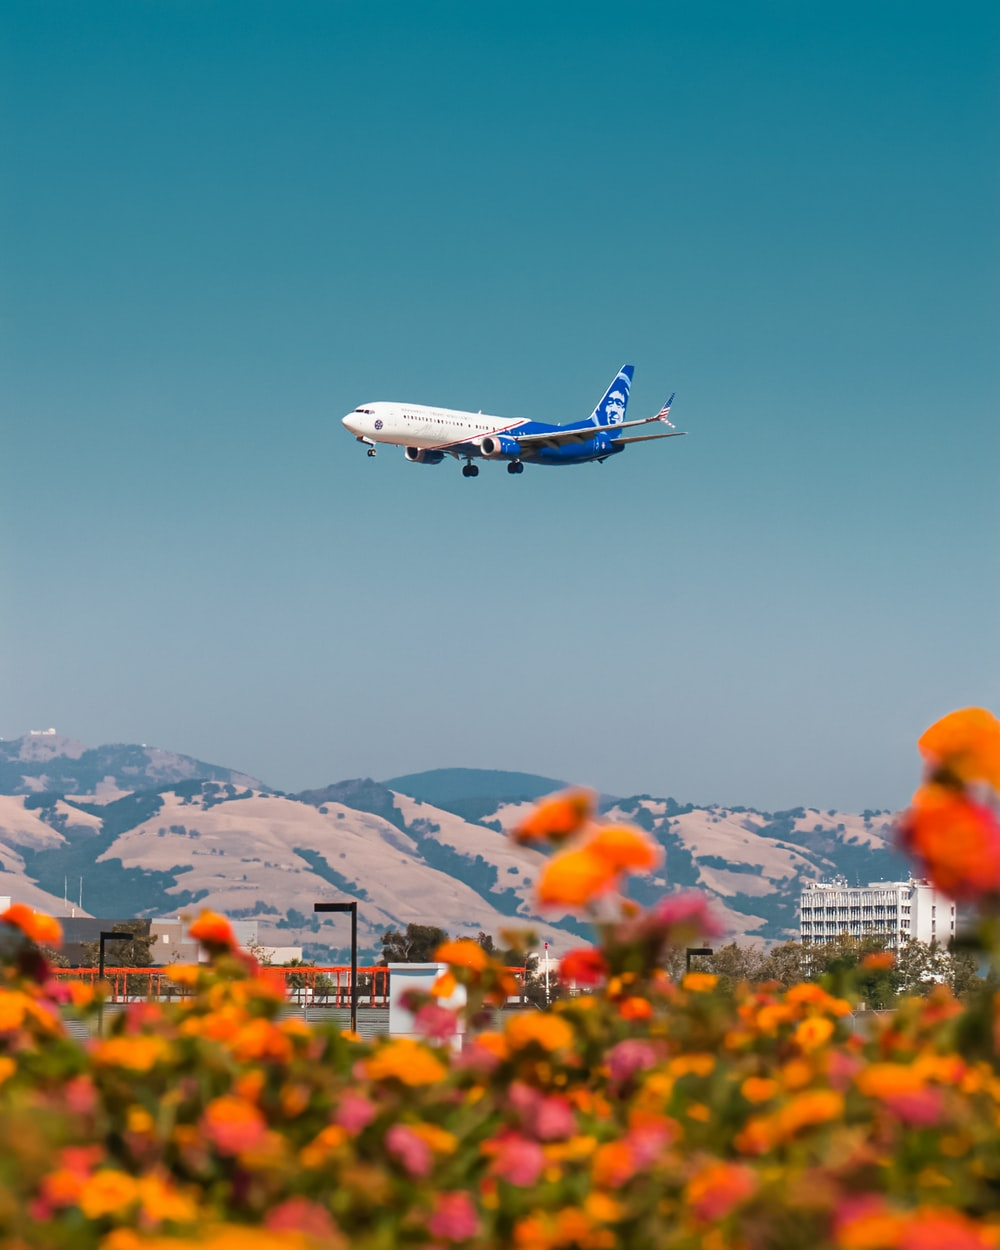 white and blue airplane flying over the orange flower field during daytime